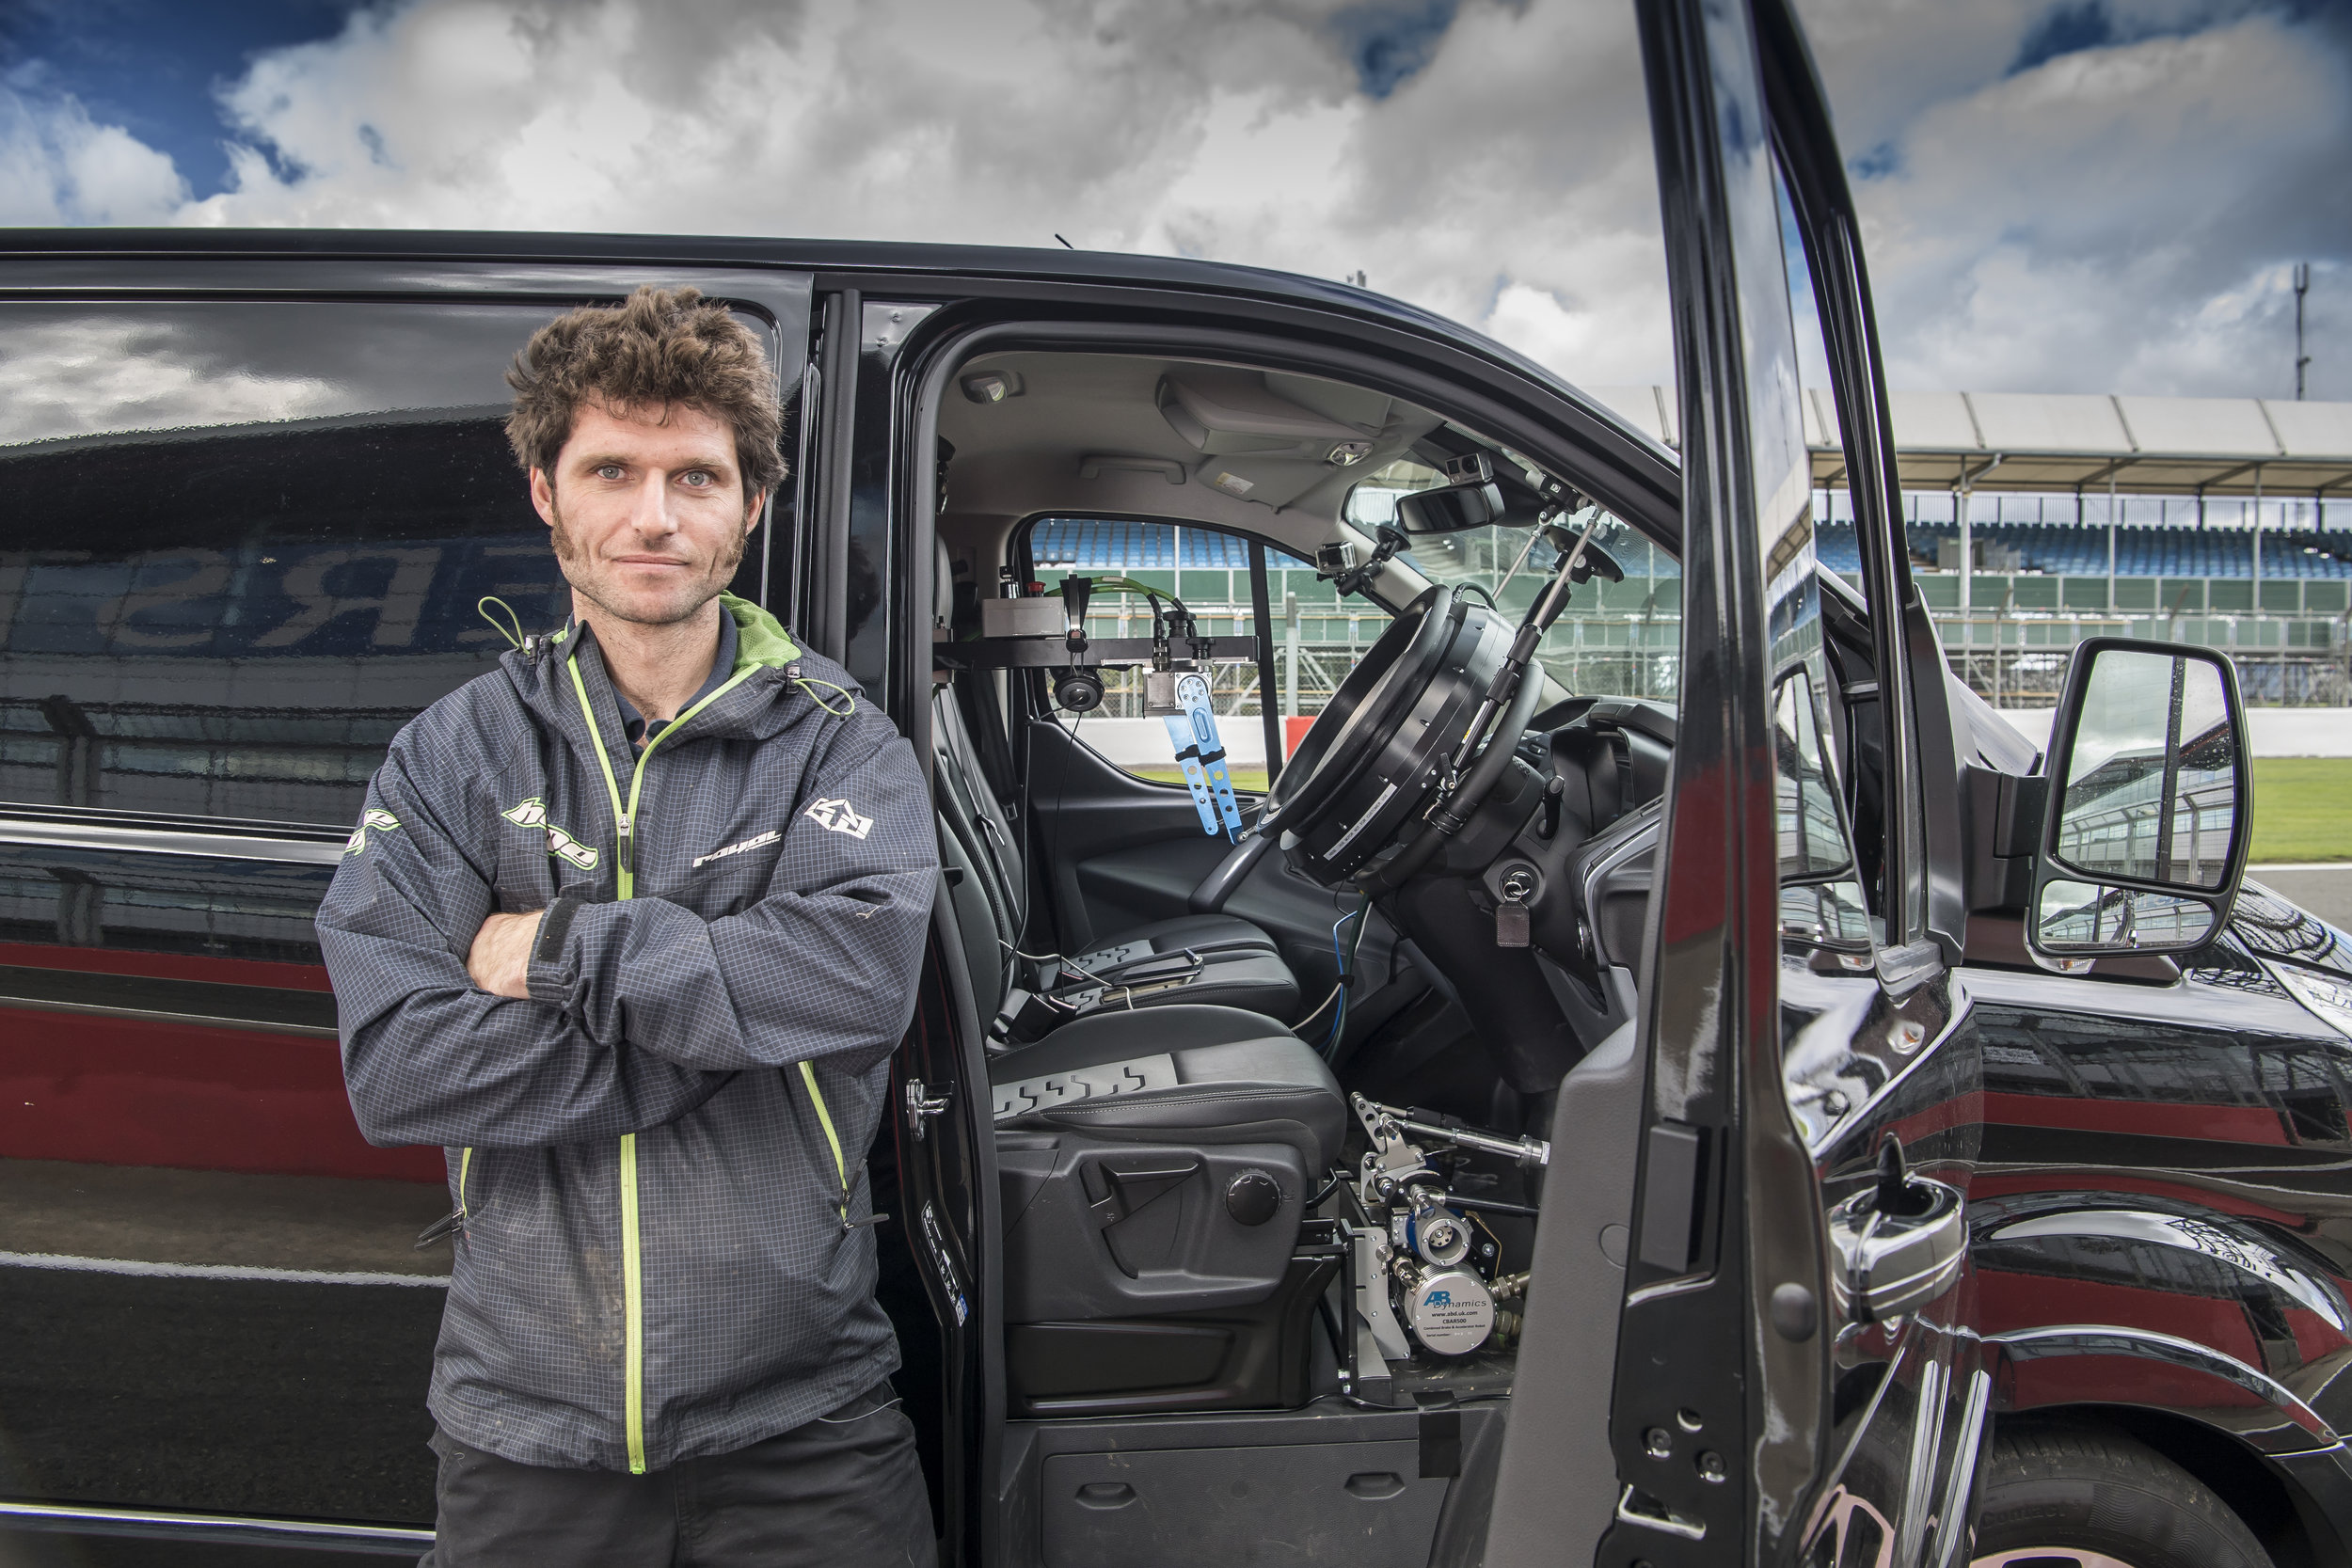 GuyMartinVsTheRobotCar Guy CU by side of Transit fitted with AB Dynamic gear at Silverstone Circuit 130917©BarryHayden.jpg